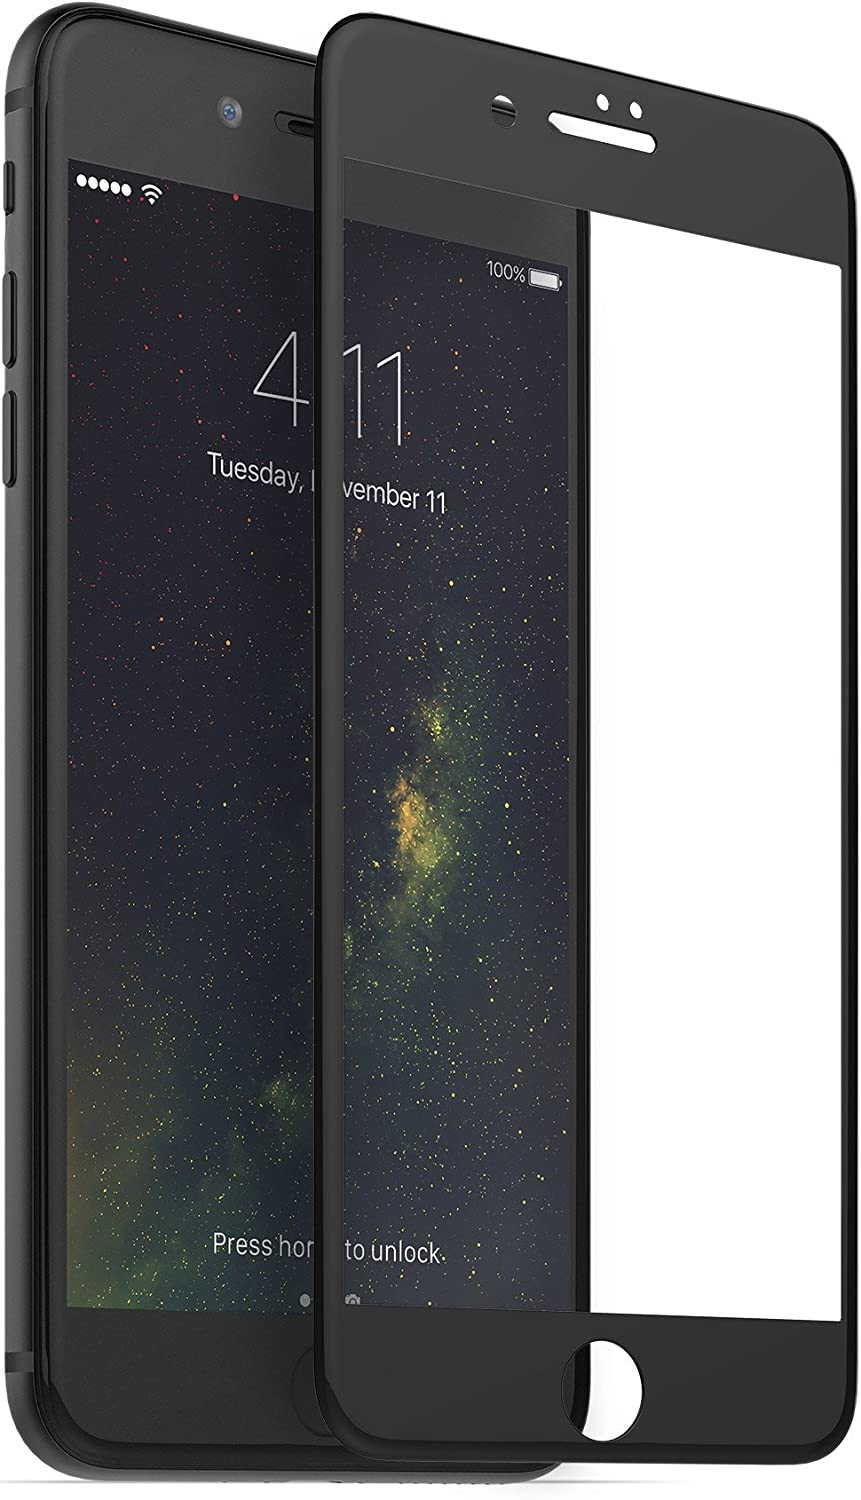 Amazon Com Mophie 3d Glass Screen Protector Compatible With Iphone 8 Plus And Iphone 7 Plus Complete Screen Coverage For Maximum Protection Black The case can draw power from a wireless charger and can power your iphone the same way. mophie 3d glass screen protector compatible with iphone 8 plus and iphone 7 plus complete screen coverage for maximum protection black